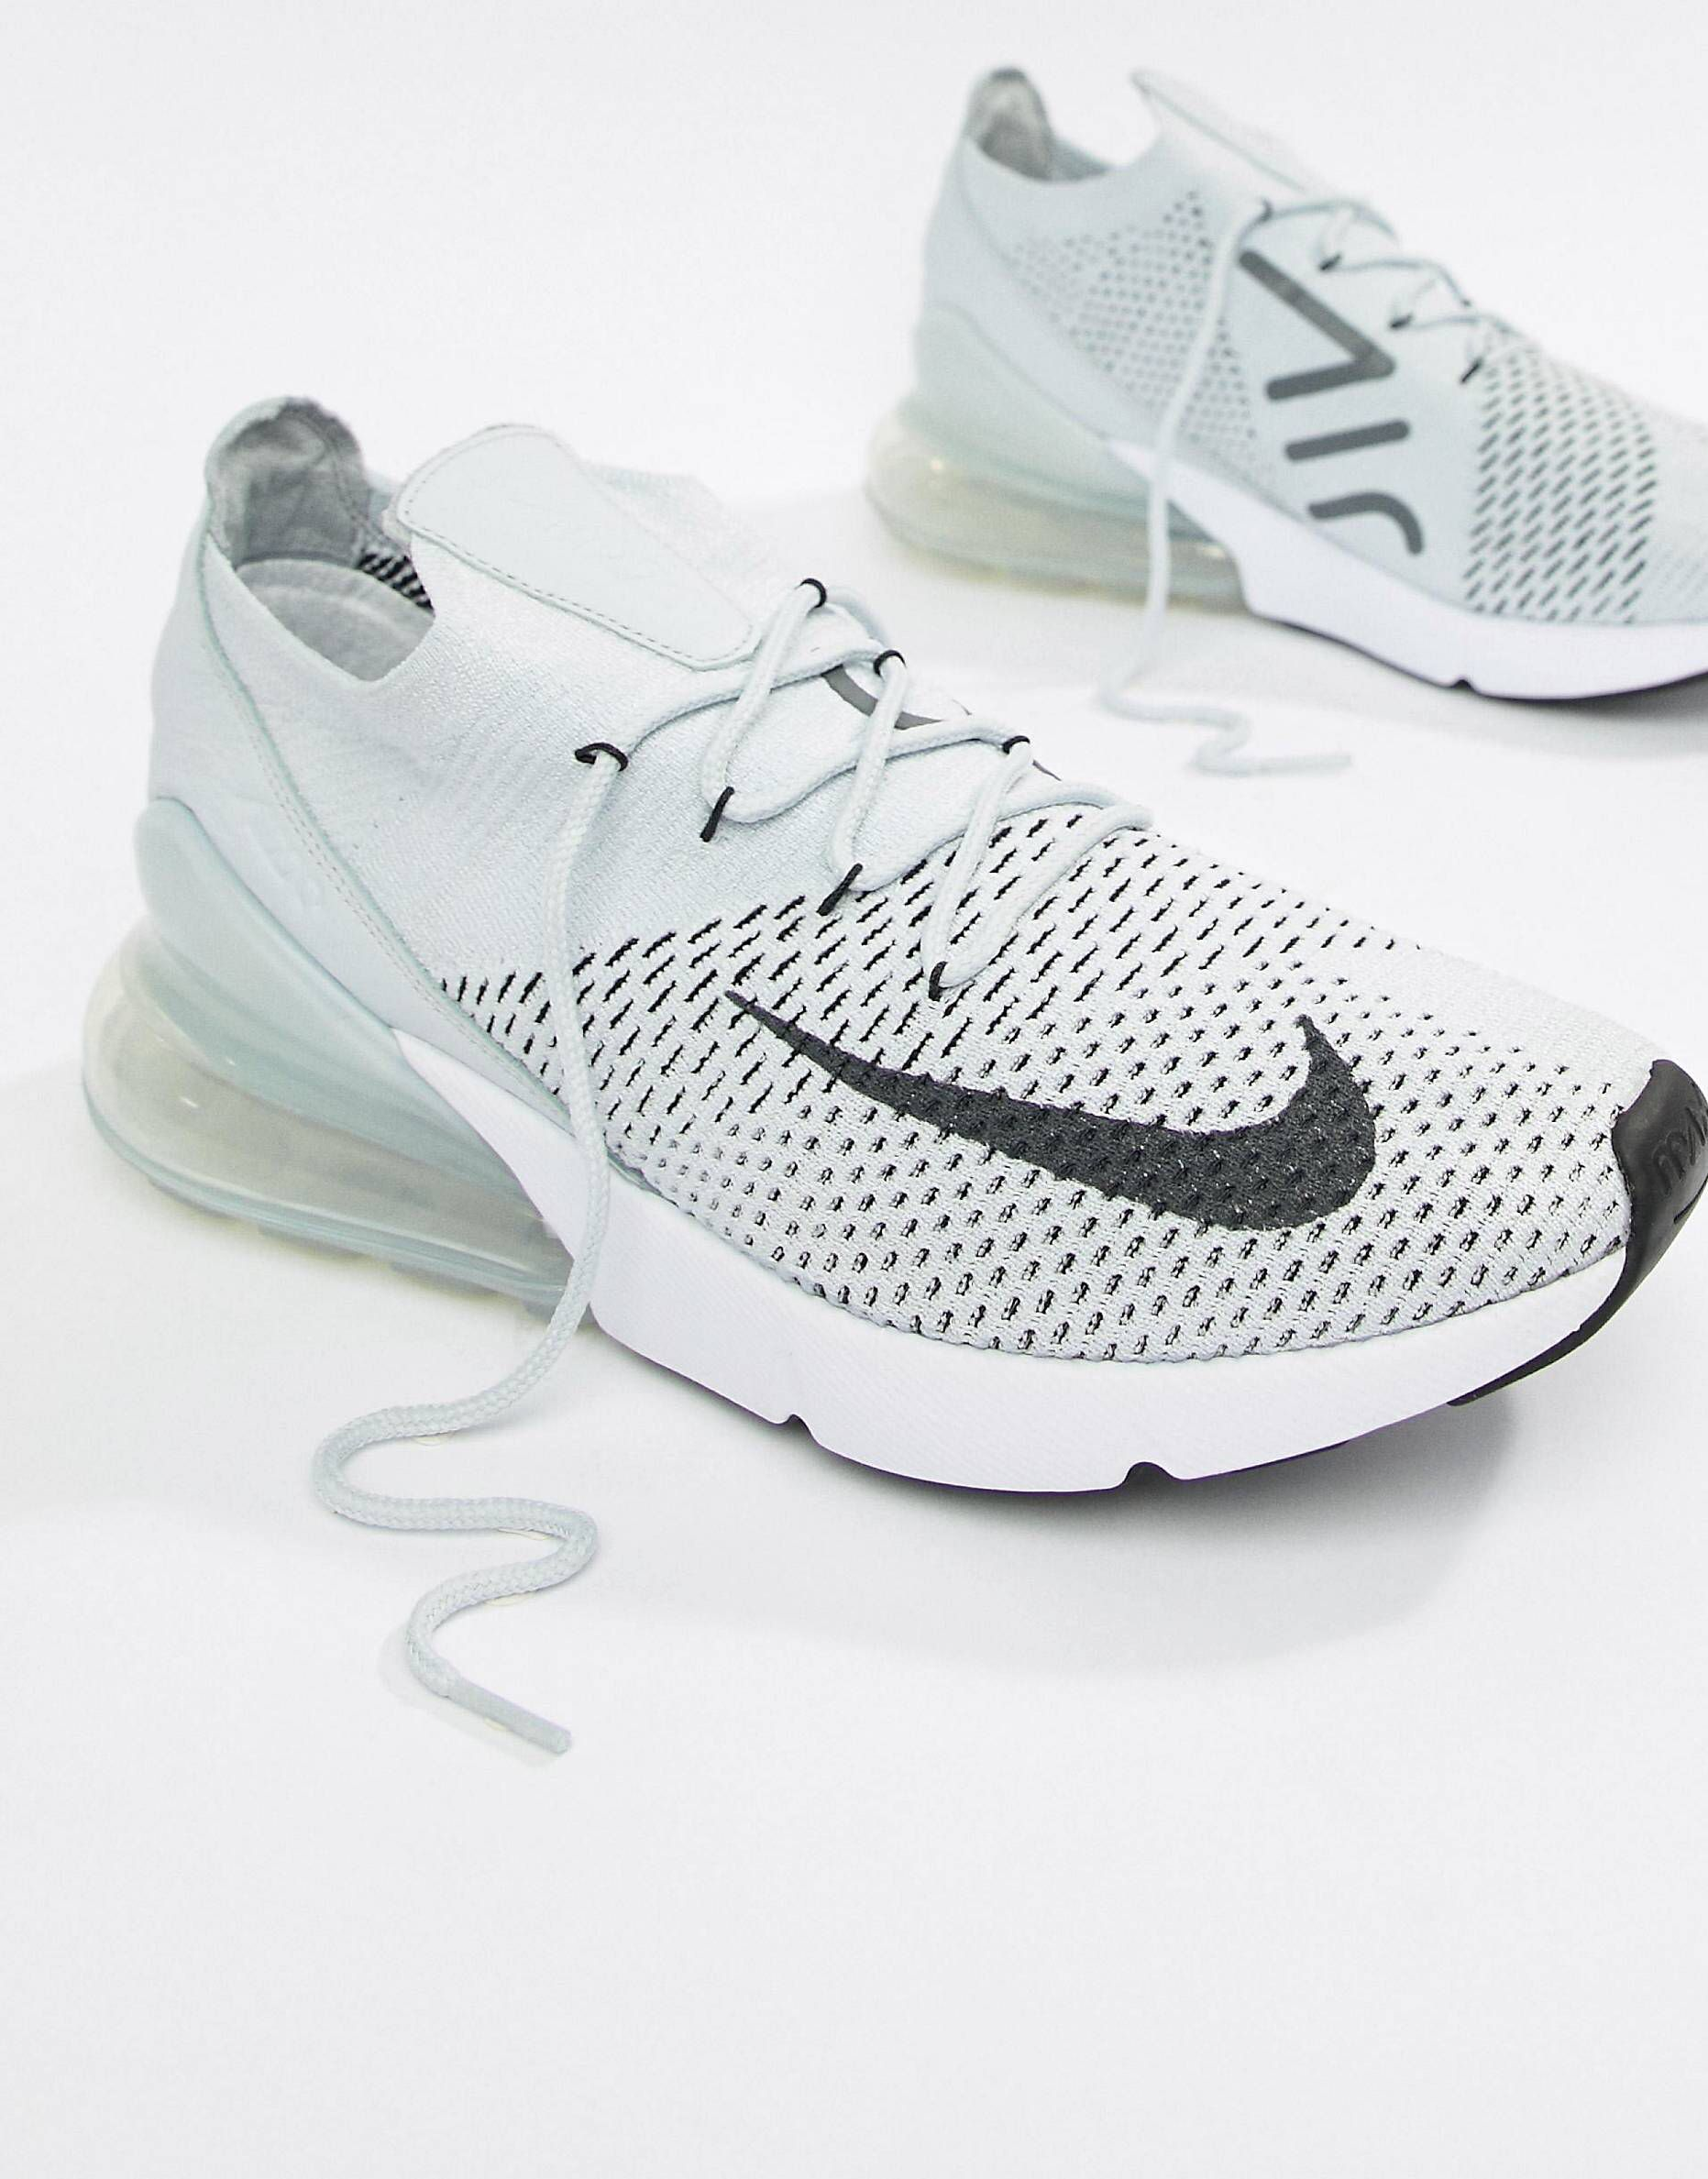 Nike Air Max 270 Flyknit Trainers In Grey AO1023 003 in 2019